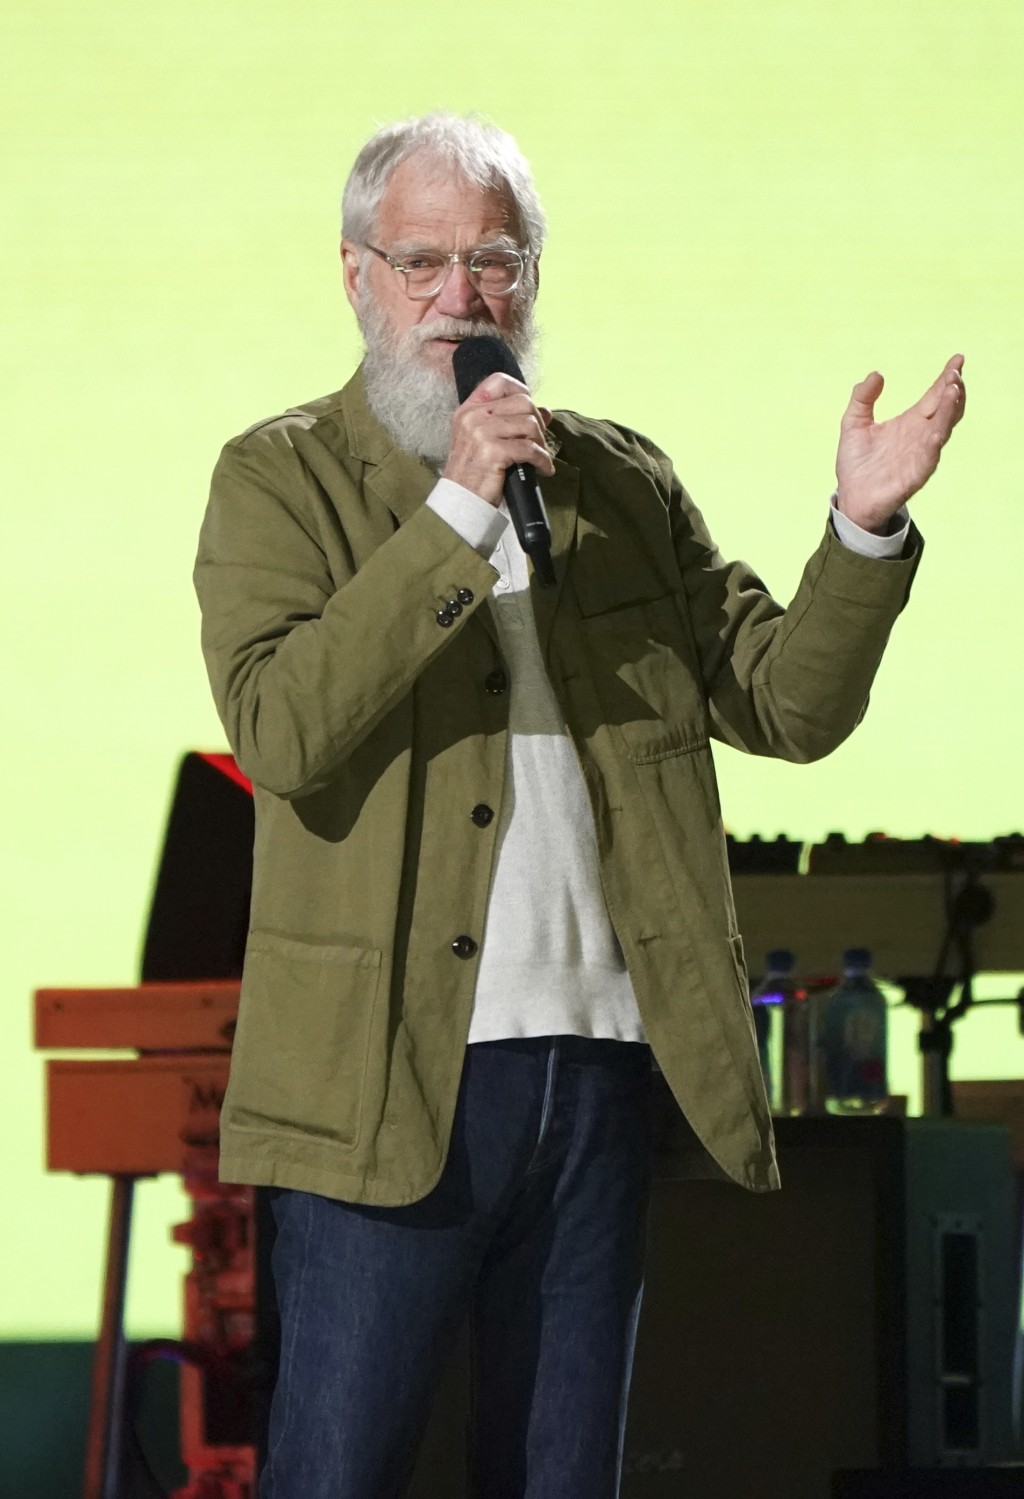 """David Letterman speaks at """"Vax Live: The Concert to Reunite the World"""" on Sunday, May 2, 2021, at SoFi Stadium in Inglewood, Calif. (Photo by Jordan S..."""